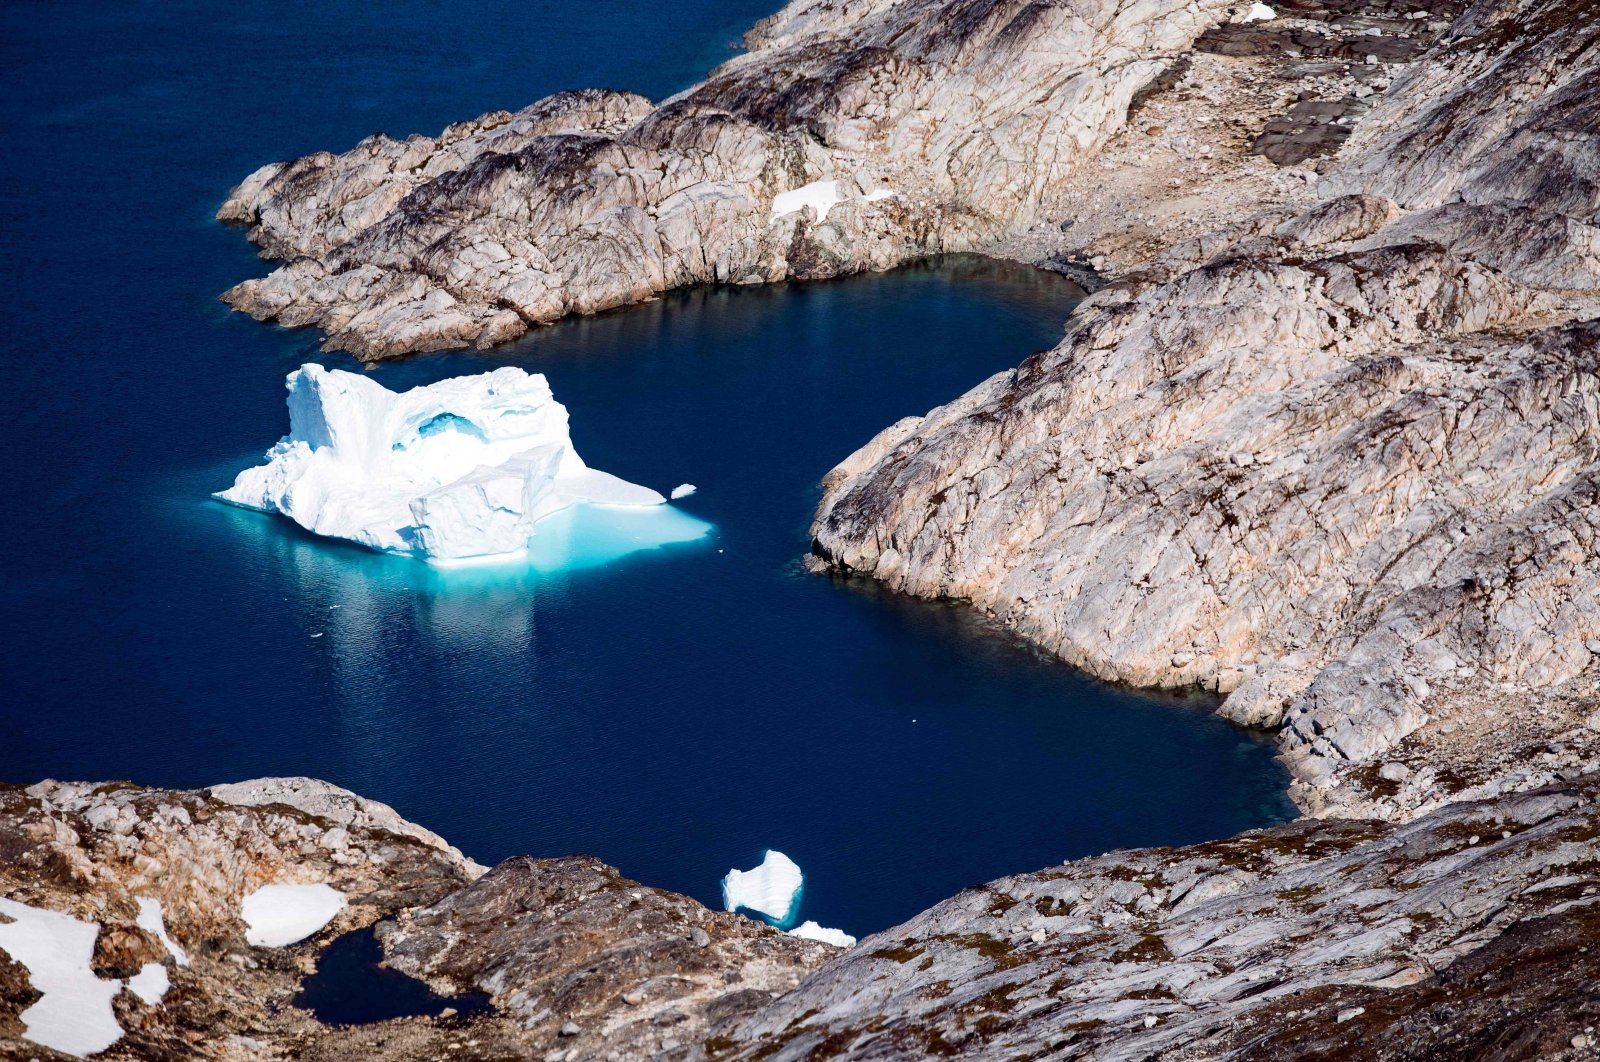 An aerial view shows an iceberg as it floats near Kulusuk, along the eastern coast of Greenland, Aug. 15, 2019. (AFP Photo)